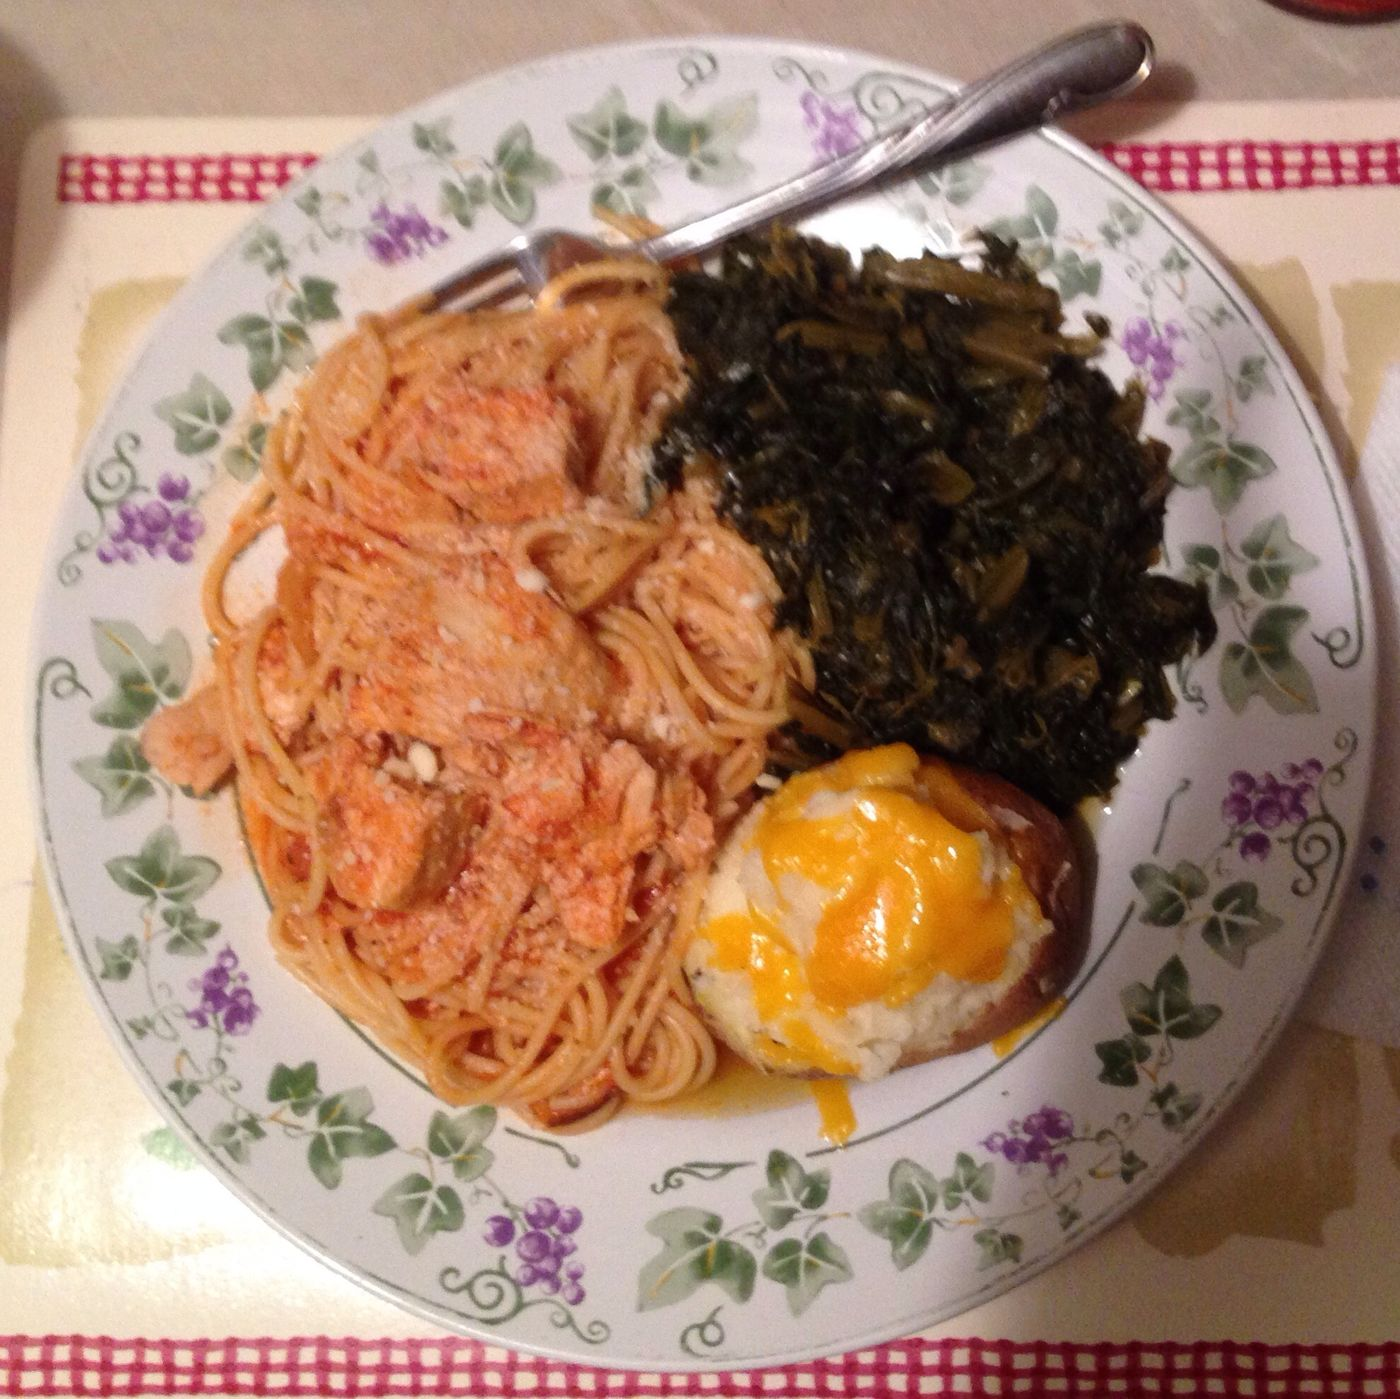 My Mama's Famous Chicken Spaghetti, Collard Greens, and Twice Baked Potatoe! Oh Hell Yeah!!!! Lol! IT'S MY BIRTHDAY!!!!! My Birthday Lunch So Yummy!!!!